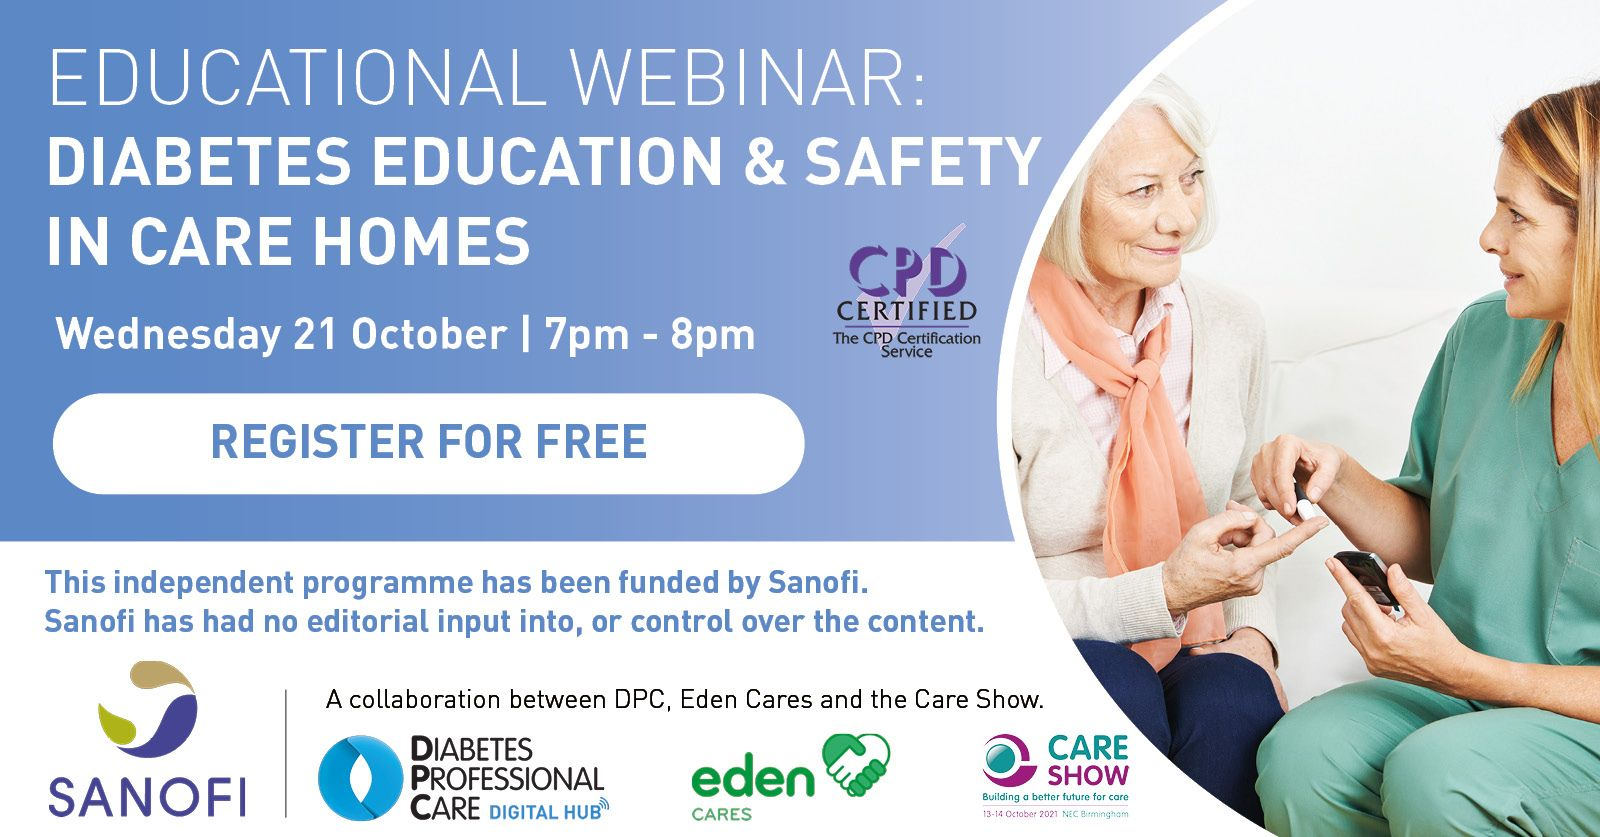 Our latest webinar